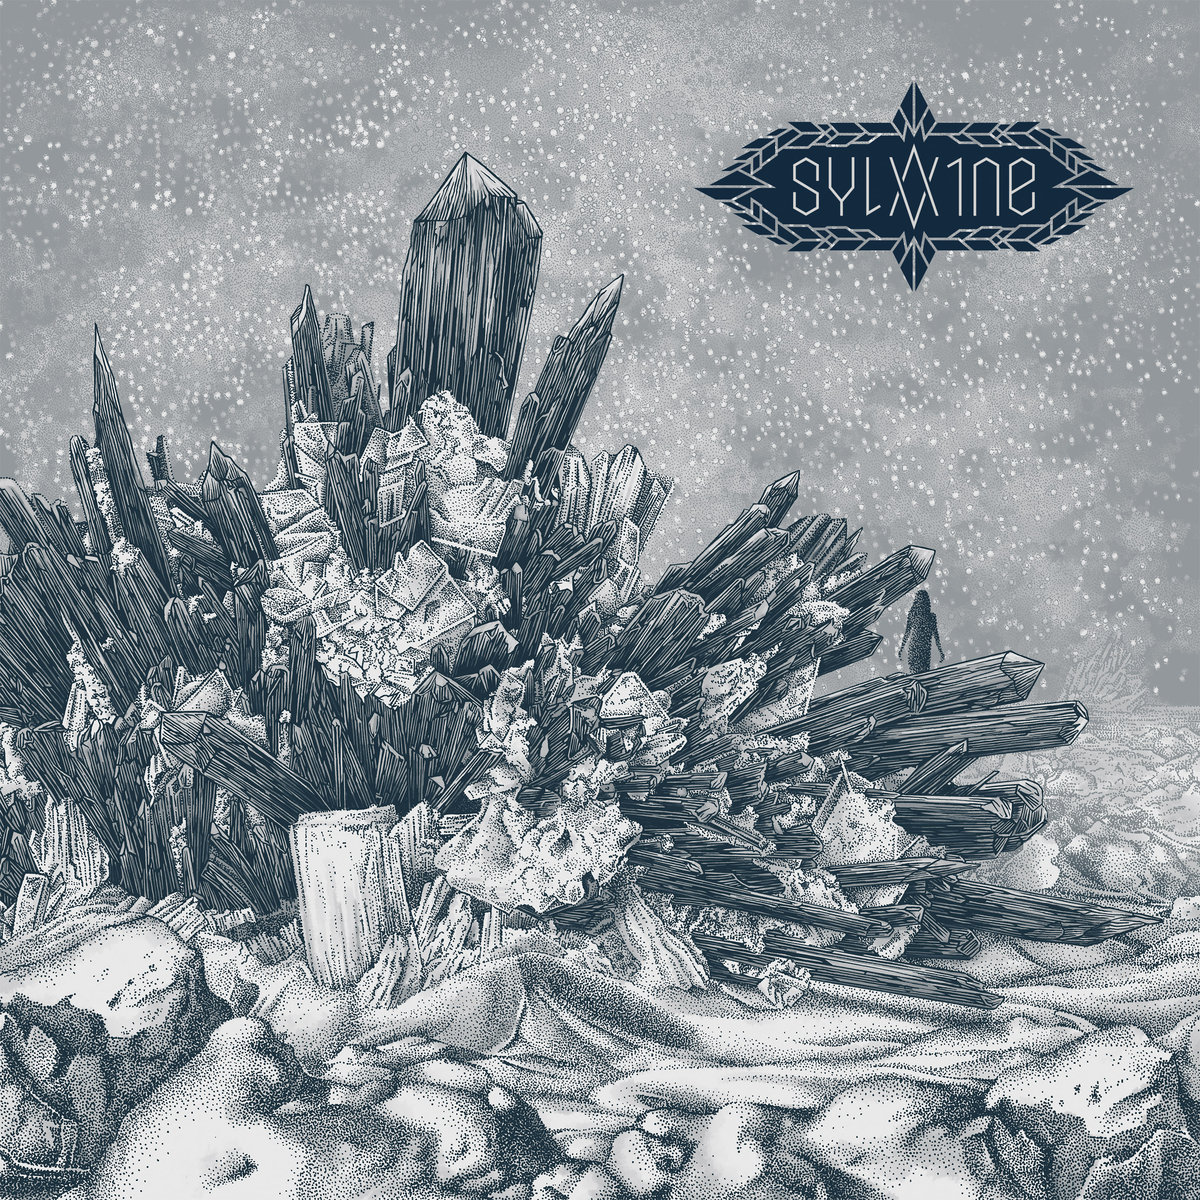 #6 Sylvaine: Atoms Aligned, Coming Undone - Black metal is no stranger to one-man projects, but Sylvaine anoints her multi-instrumental prowess into one of the most affecting metal albums of the year. The Norwegian artist creates a hypnotizing, layered galaxy of post-black ambiance, while her exquisite vocals stream from glossy melody to gut-wrenching screams in enthralling symmetry. Essential Track: Mørklagt